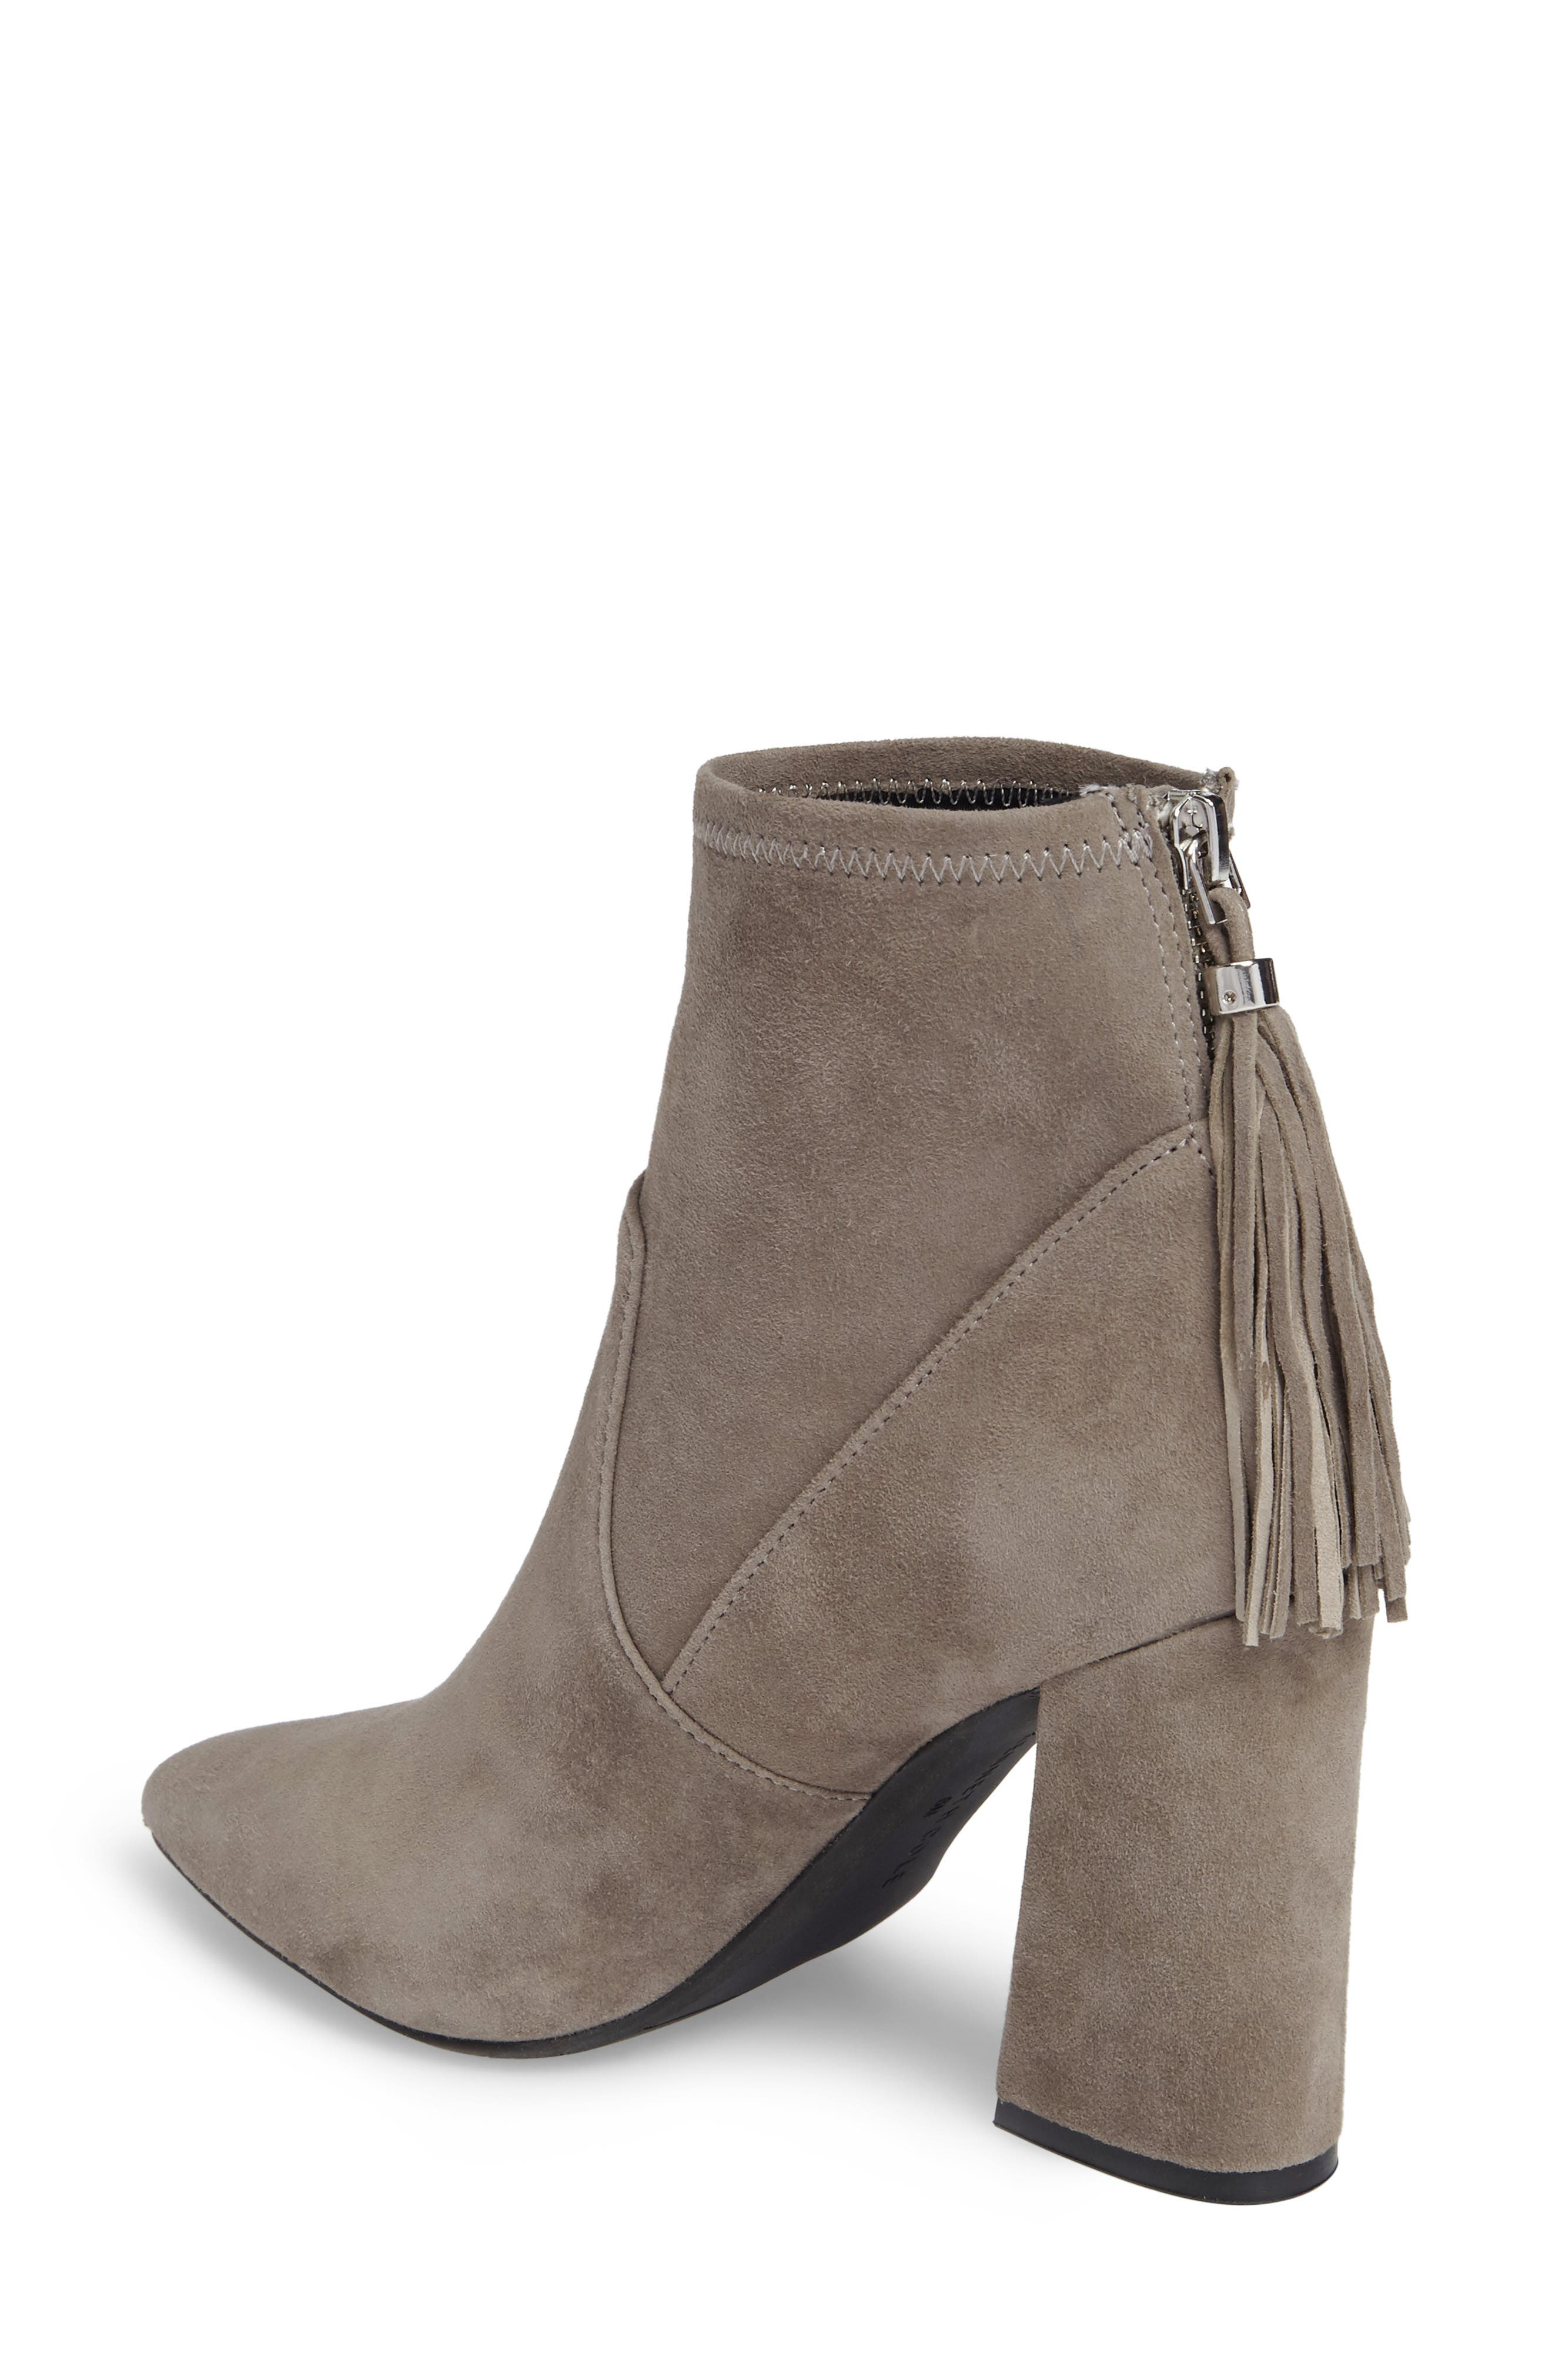 Gracelyn Pointy Toe Bootie,                             Alternate thumbnail 2, color,                             Elephant Suede